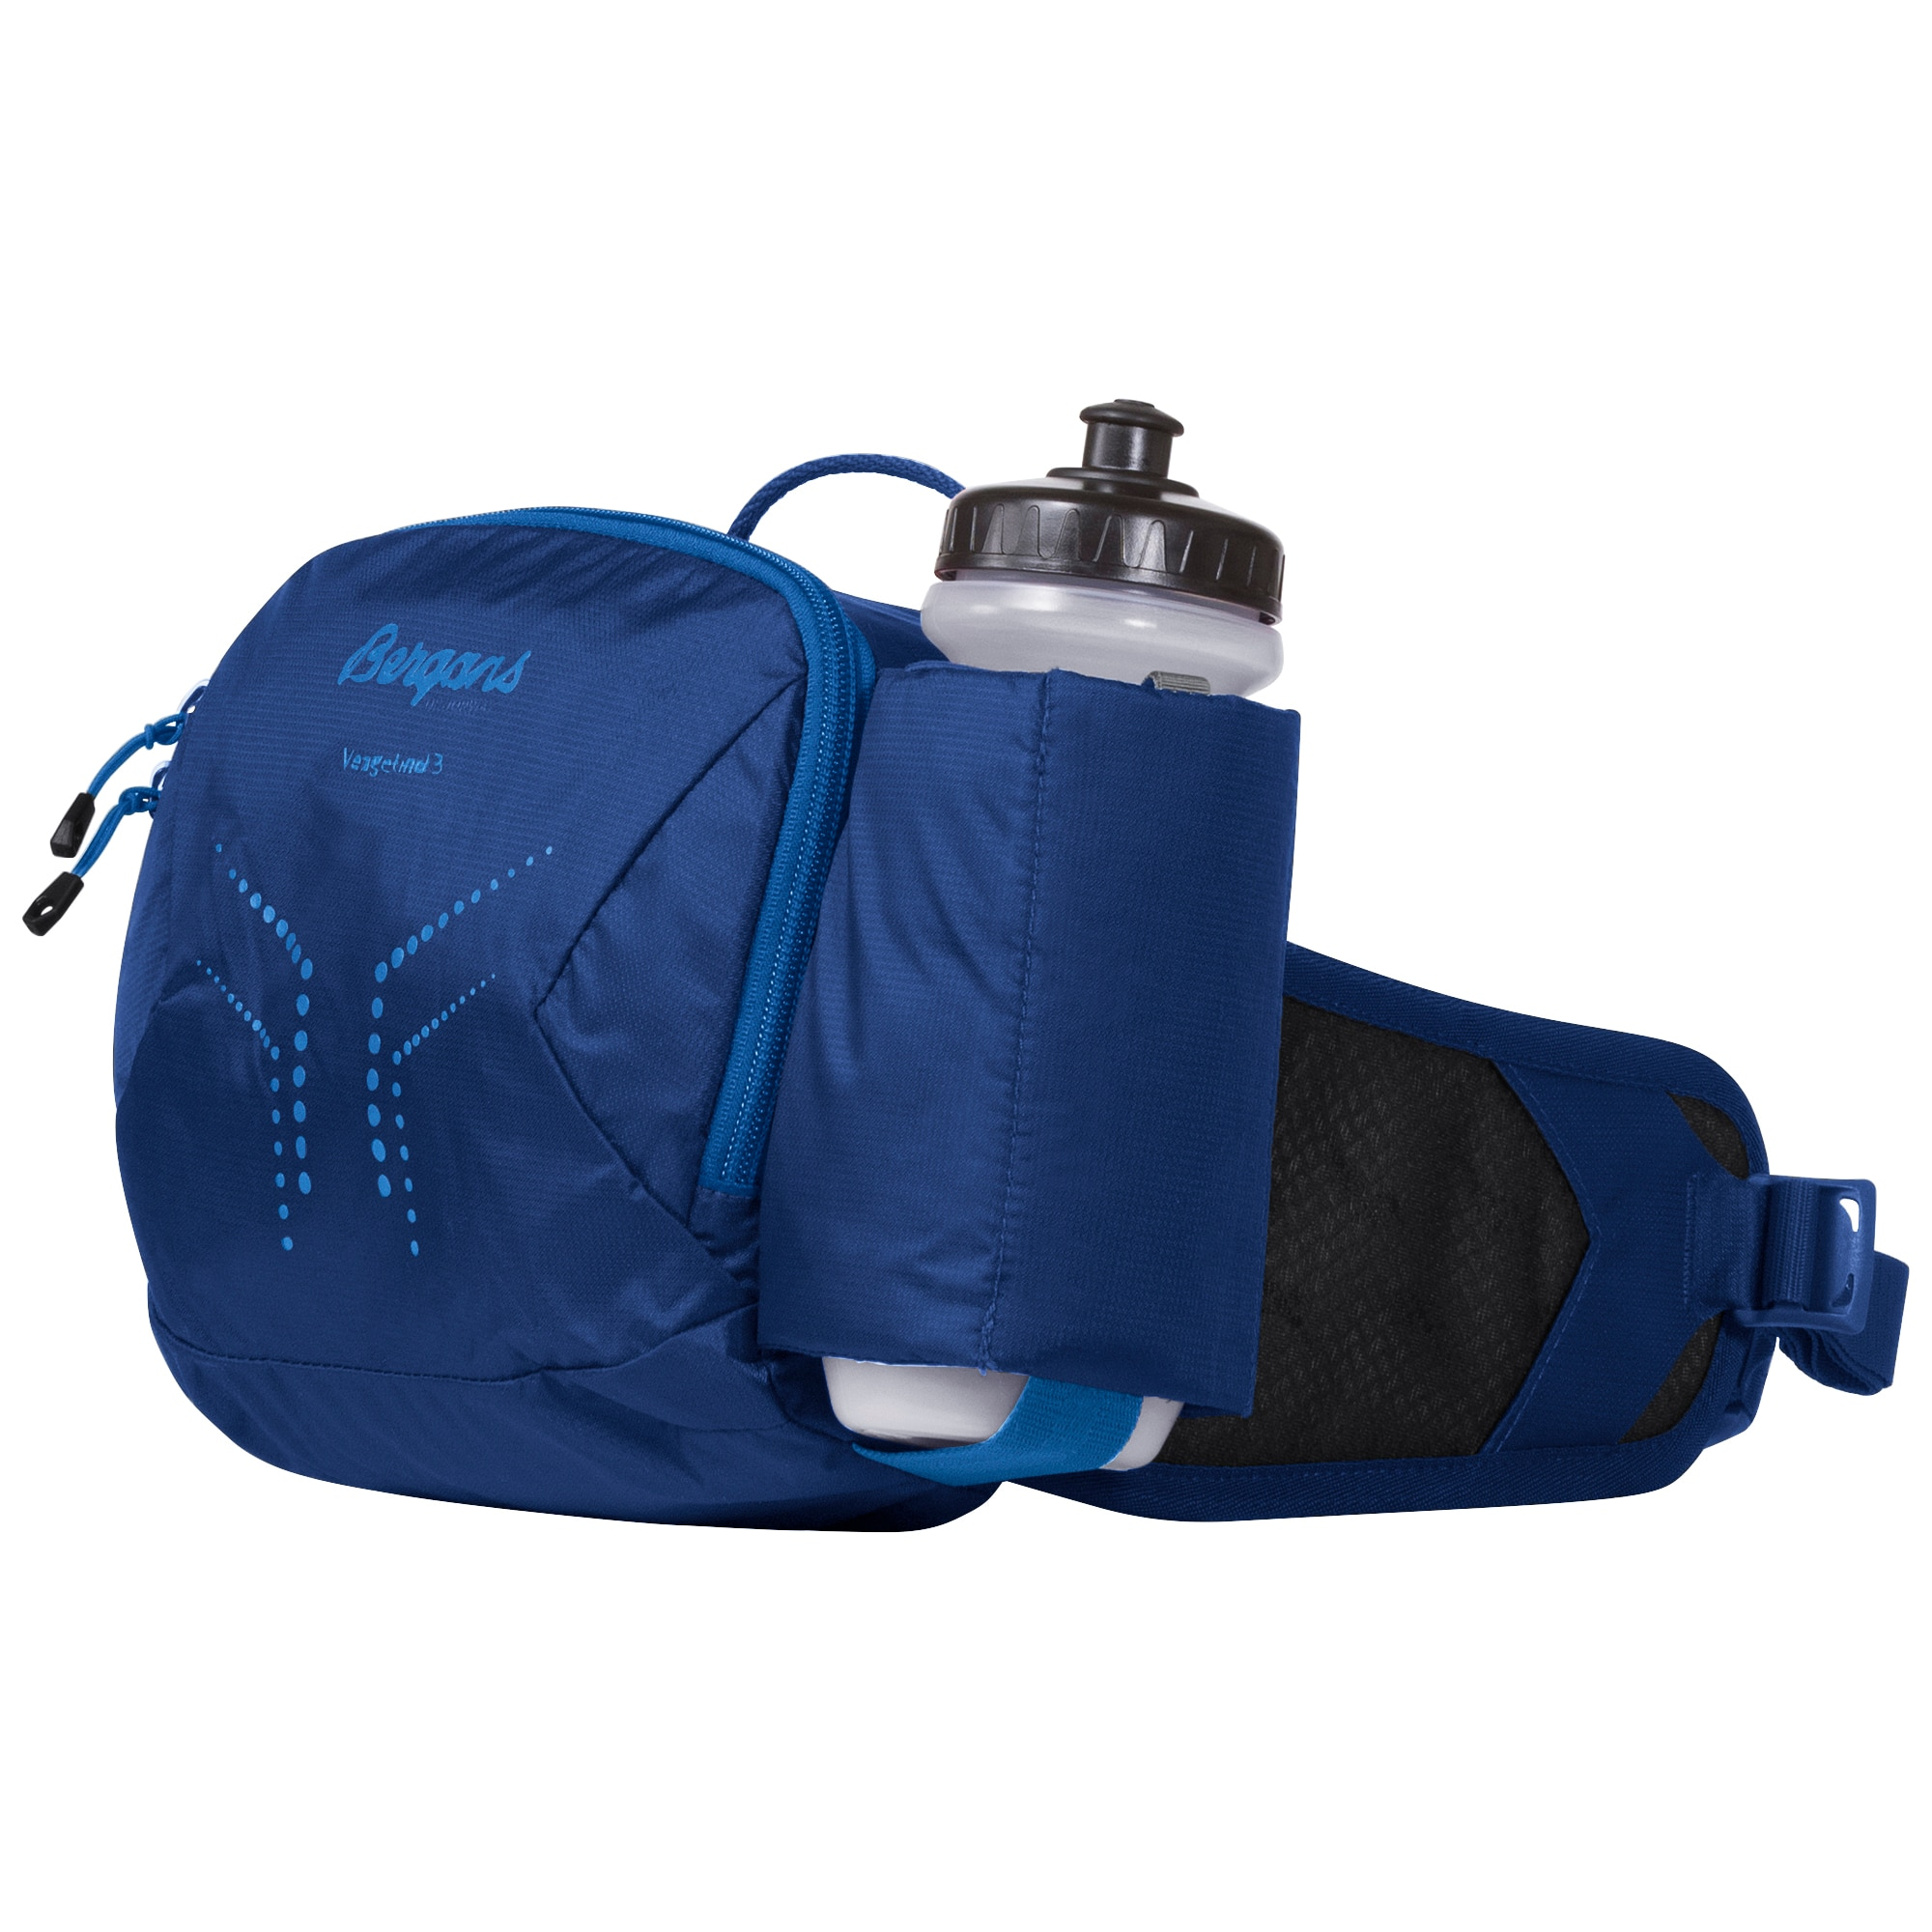 Vengetind Hip Pack 3 w/Bottle